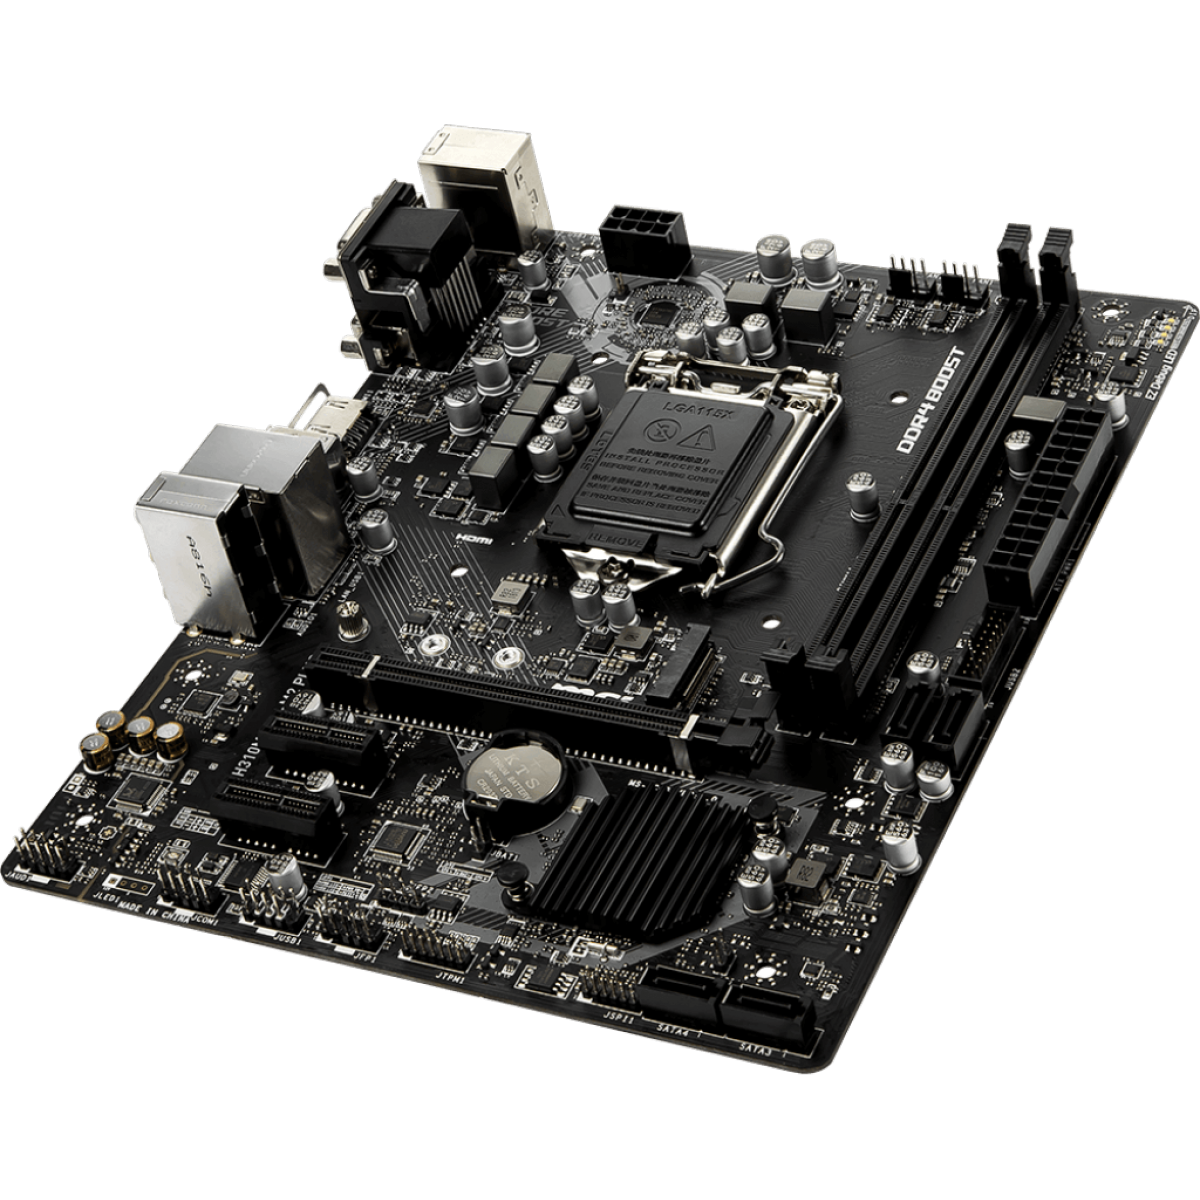 Placa Mãe MSI H310M PRO-M2 Plus, Chipset H310, Intel LGA 1151, mATX, DDR4